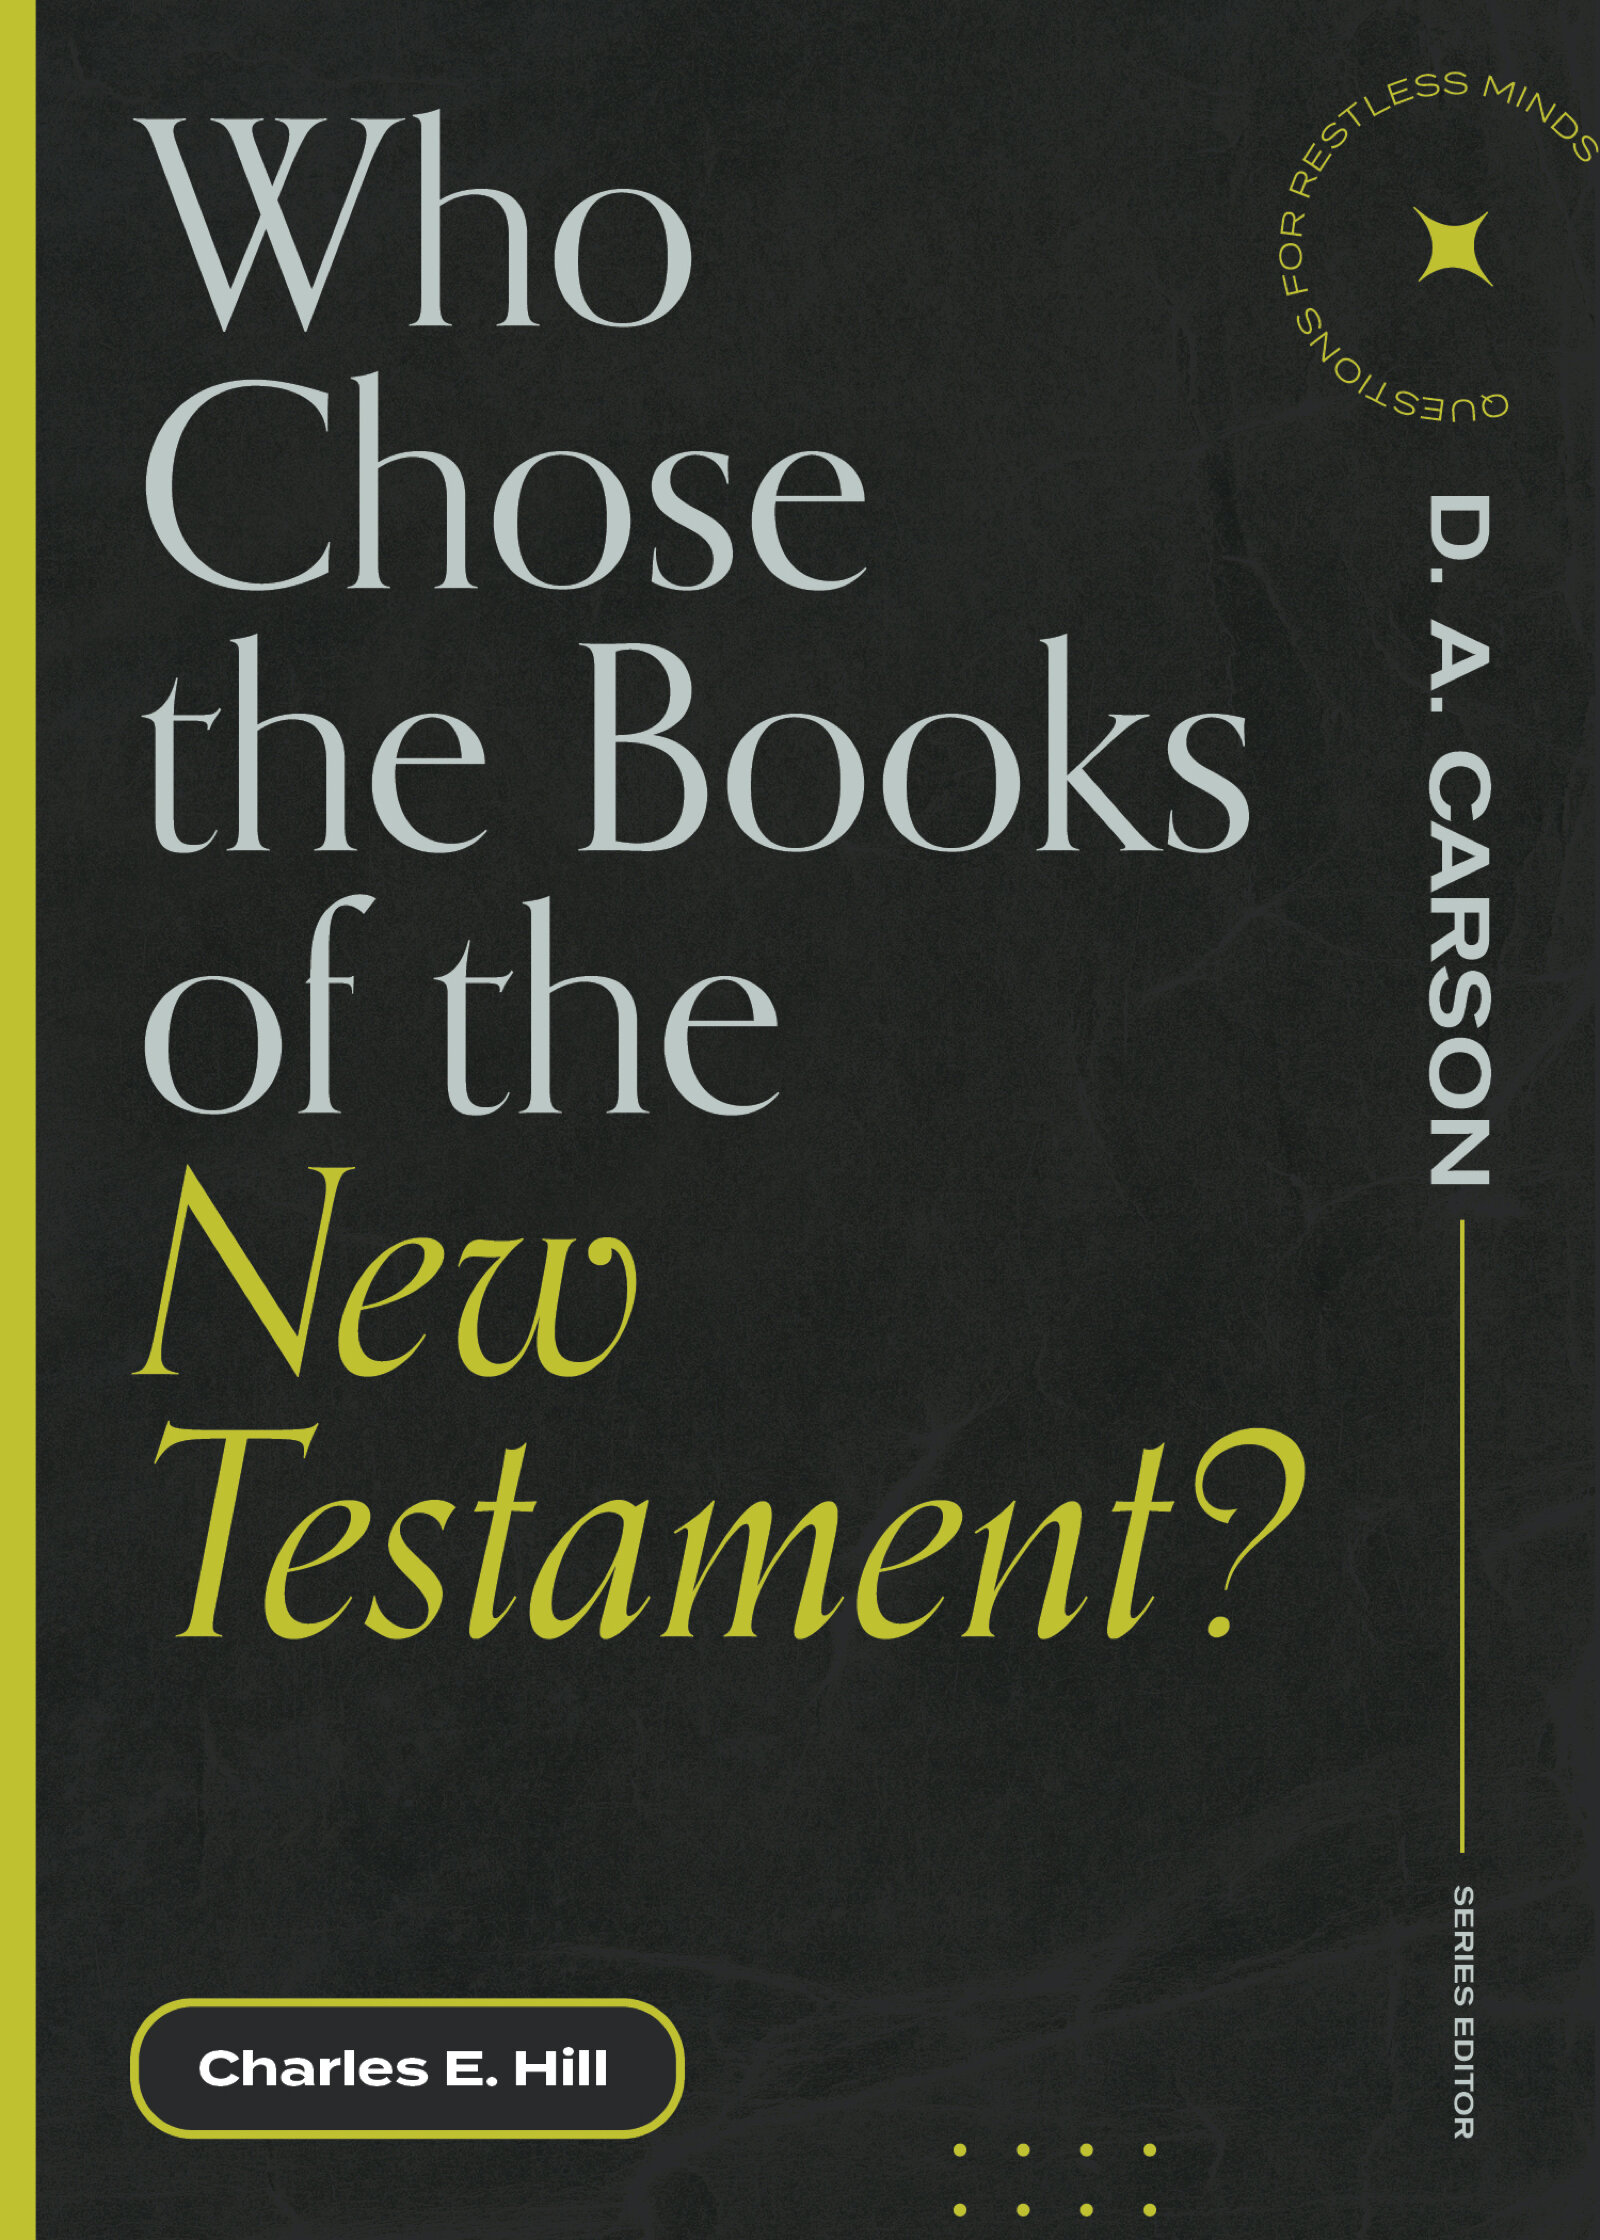 Who Chose the Books of the New Testament?